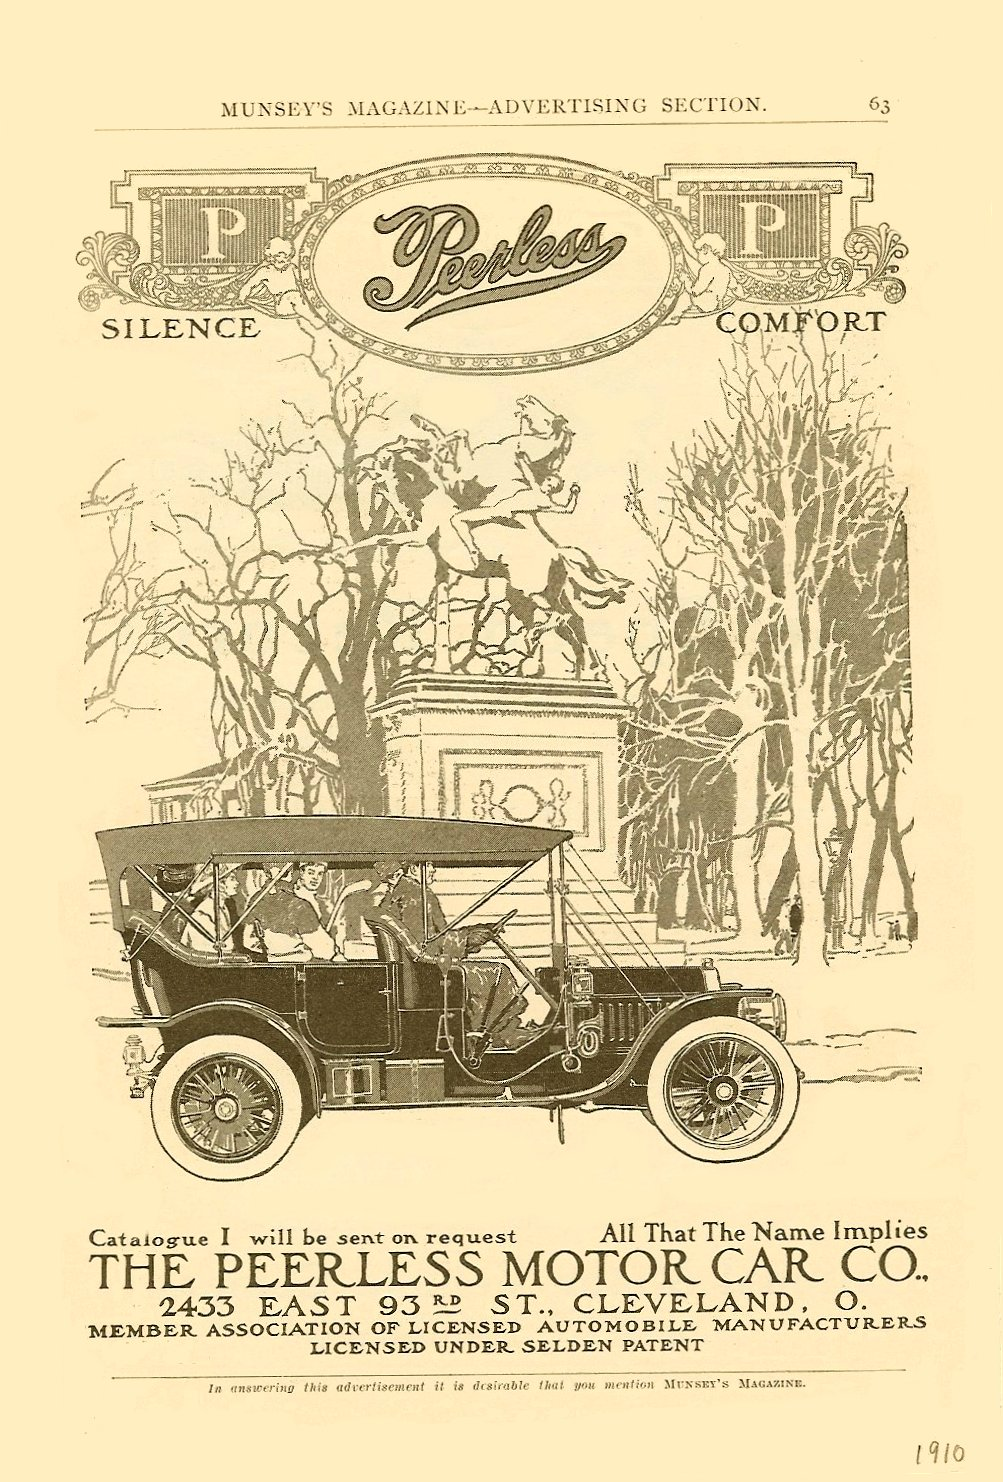 1910 Silence PEERLESS Comfort MUNSEY'S MAGAZINE – ADVERTISING SECTION 1910 6.5″x9.75″ page 63